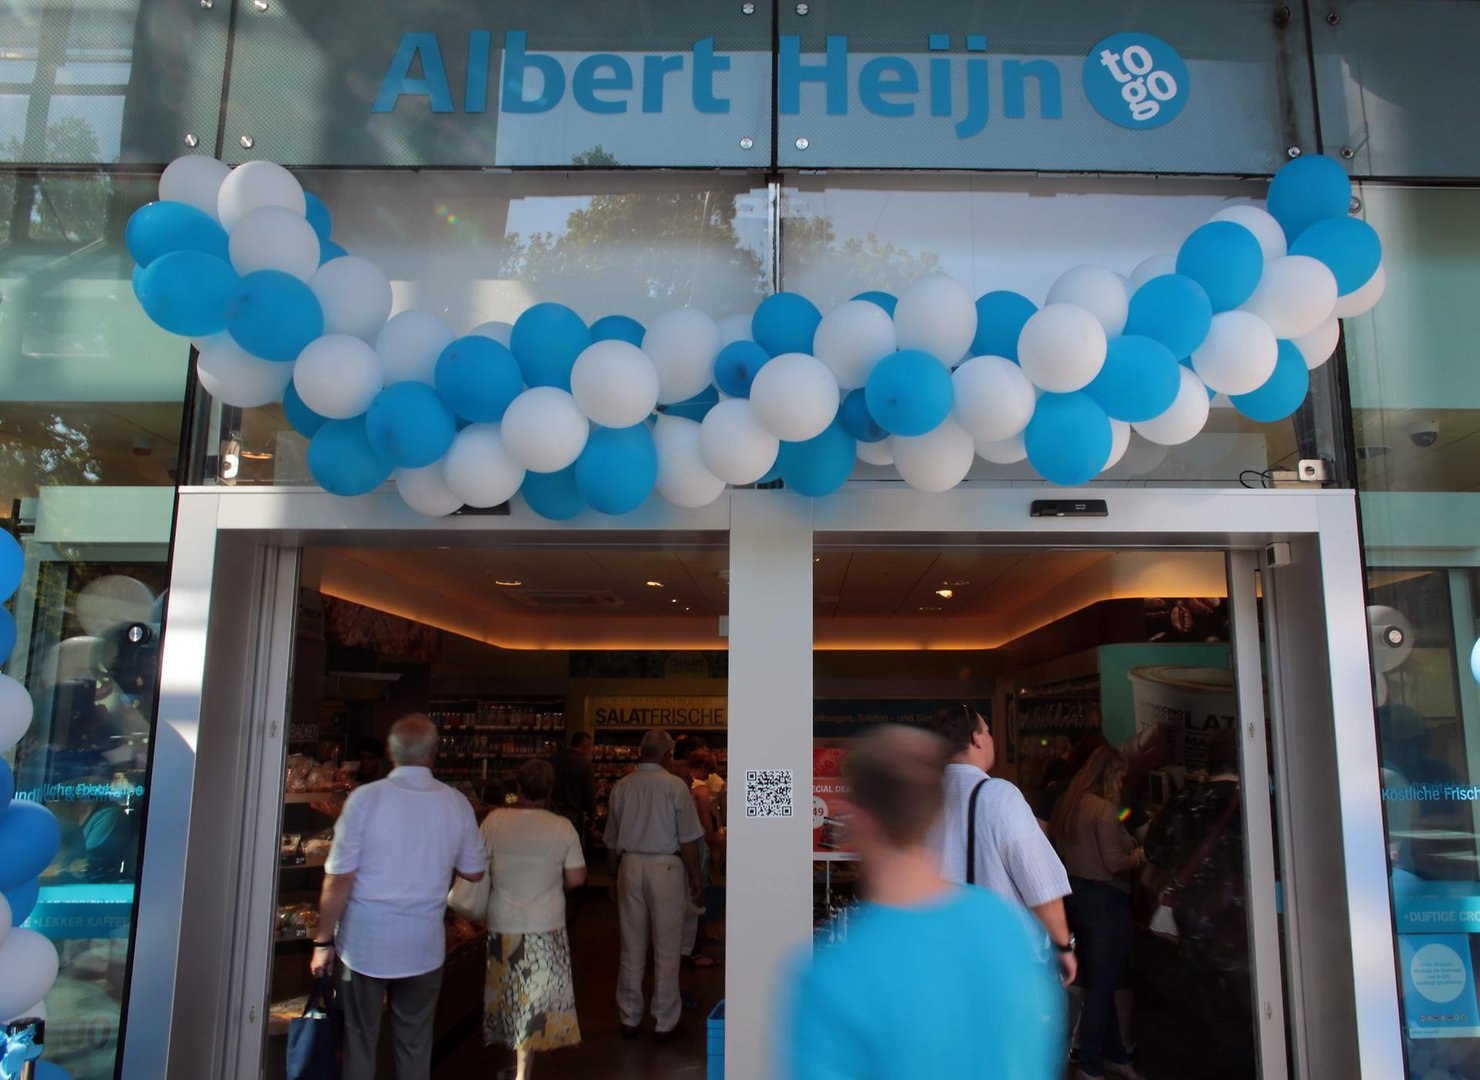 Dutch supermarket brand Albert Heijn leaves the German market